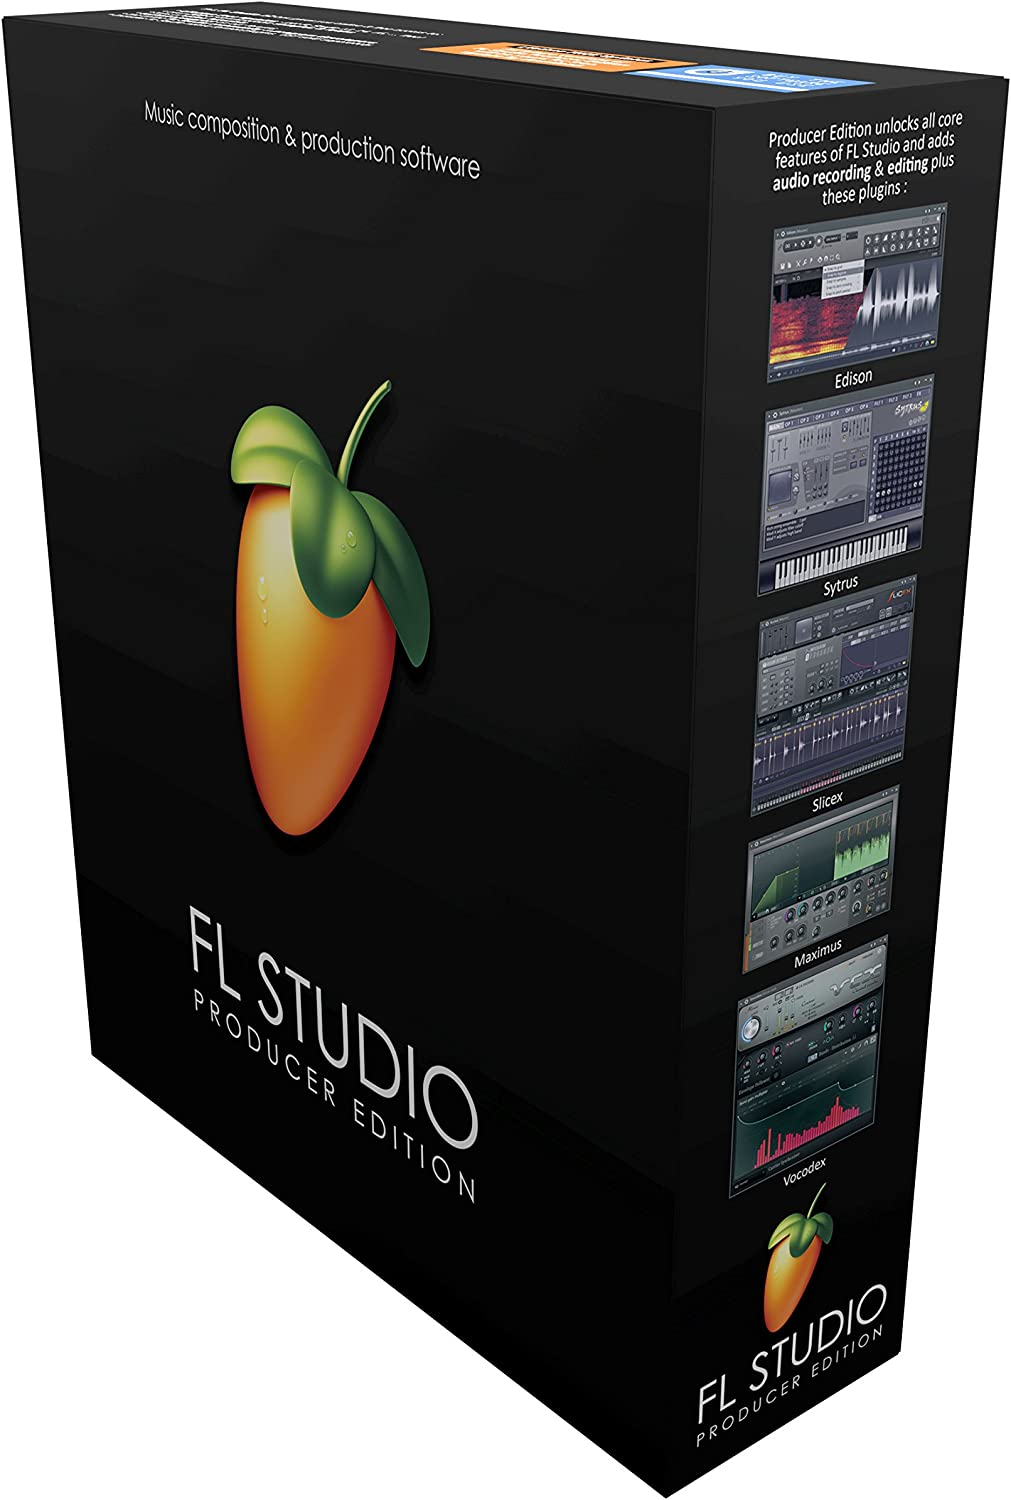 Image Line FL Studio 12 Producer Edition (Discontinued) 81eIjyQ2BHzLSL1500_